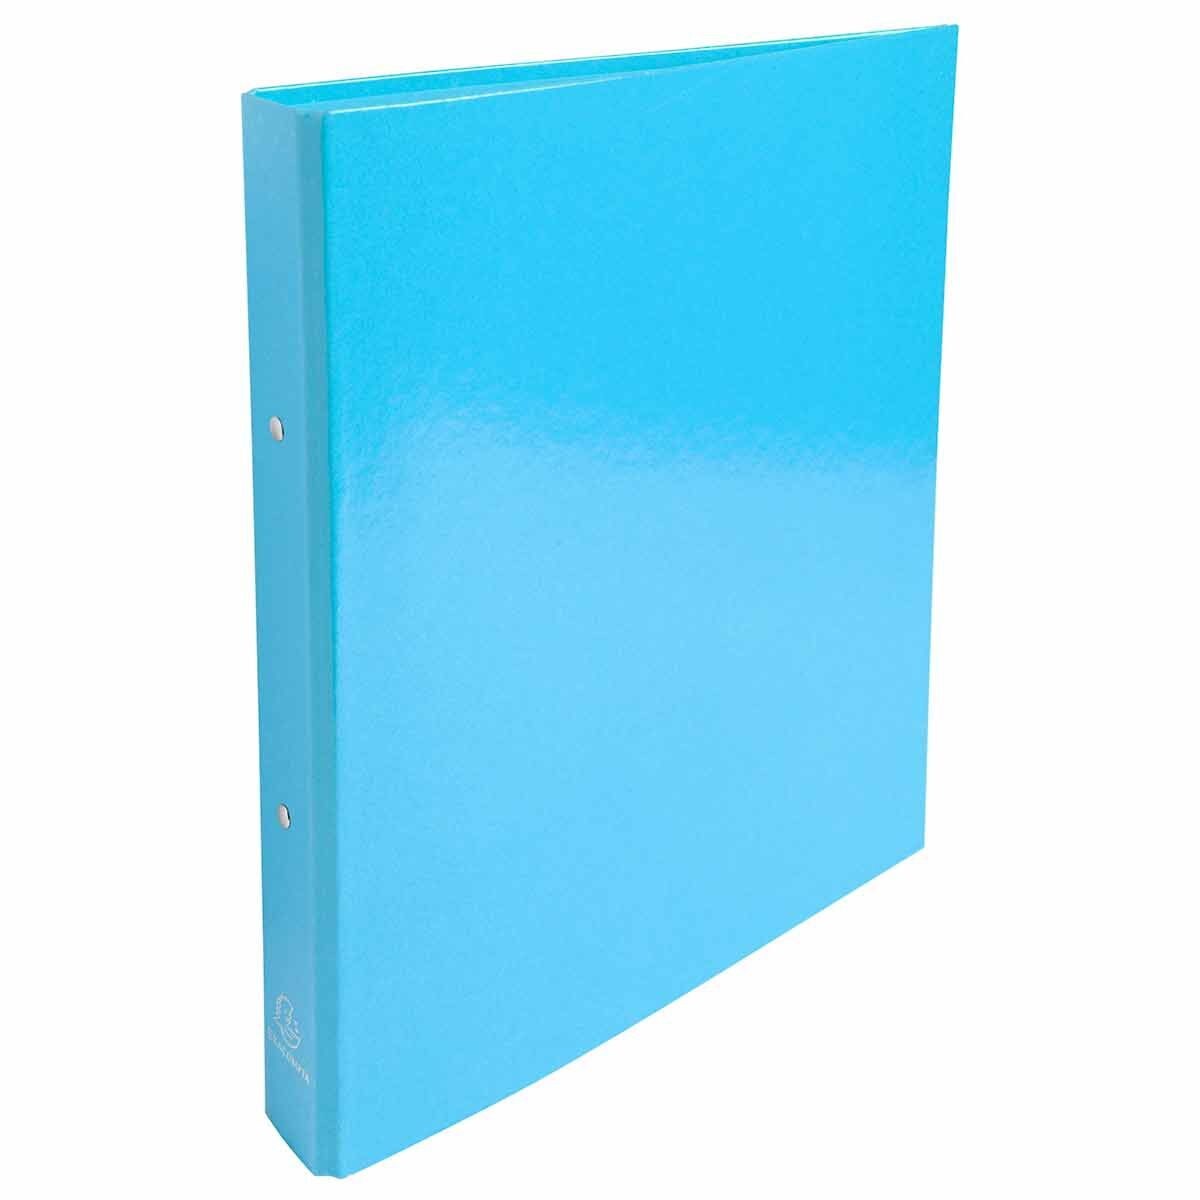 Exacompta Iderama Plastic Coated Ring Binder 2 Ring 30mm A4 Pack of 10 Light Blue